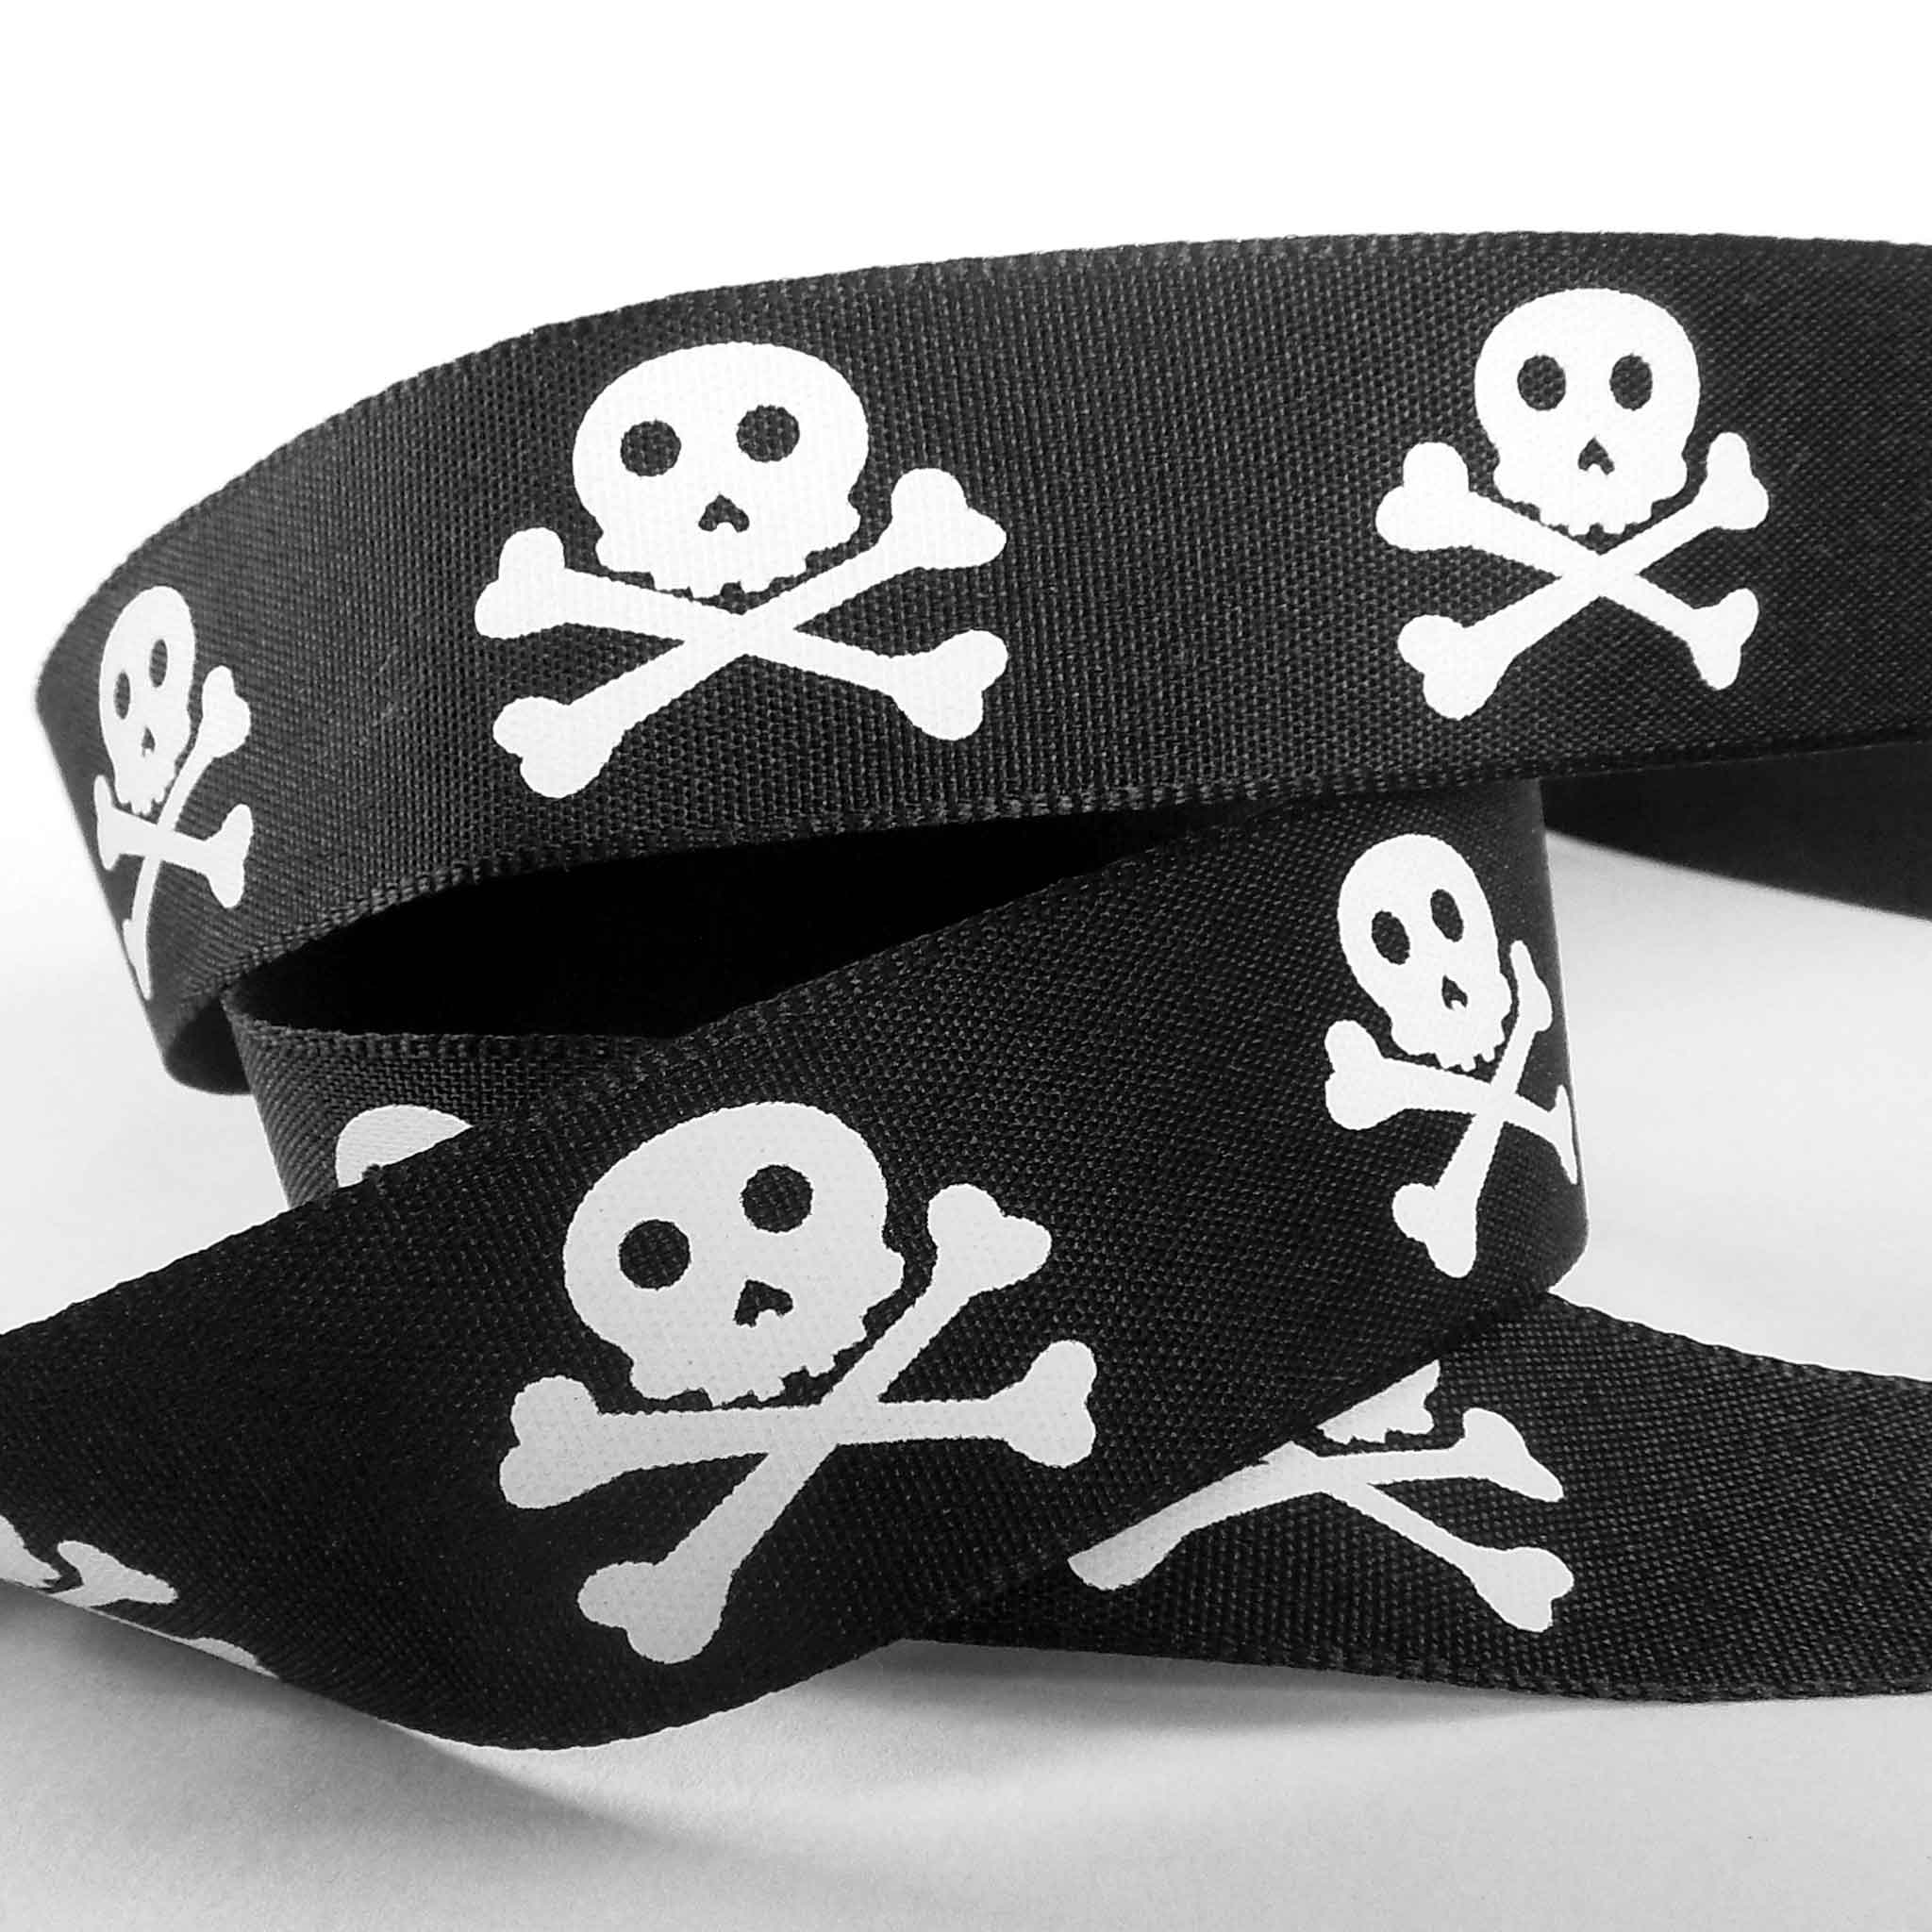 25 mm Skull and Crossbones Pirate Ribbon by Berisfords